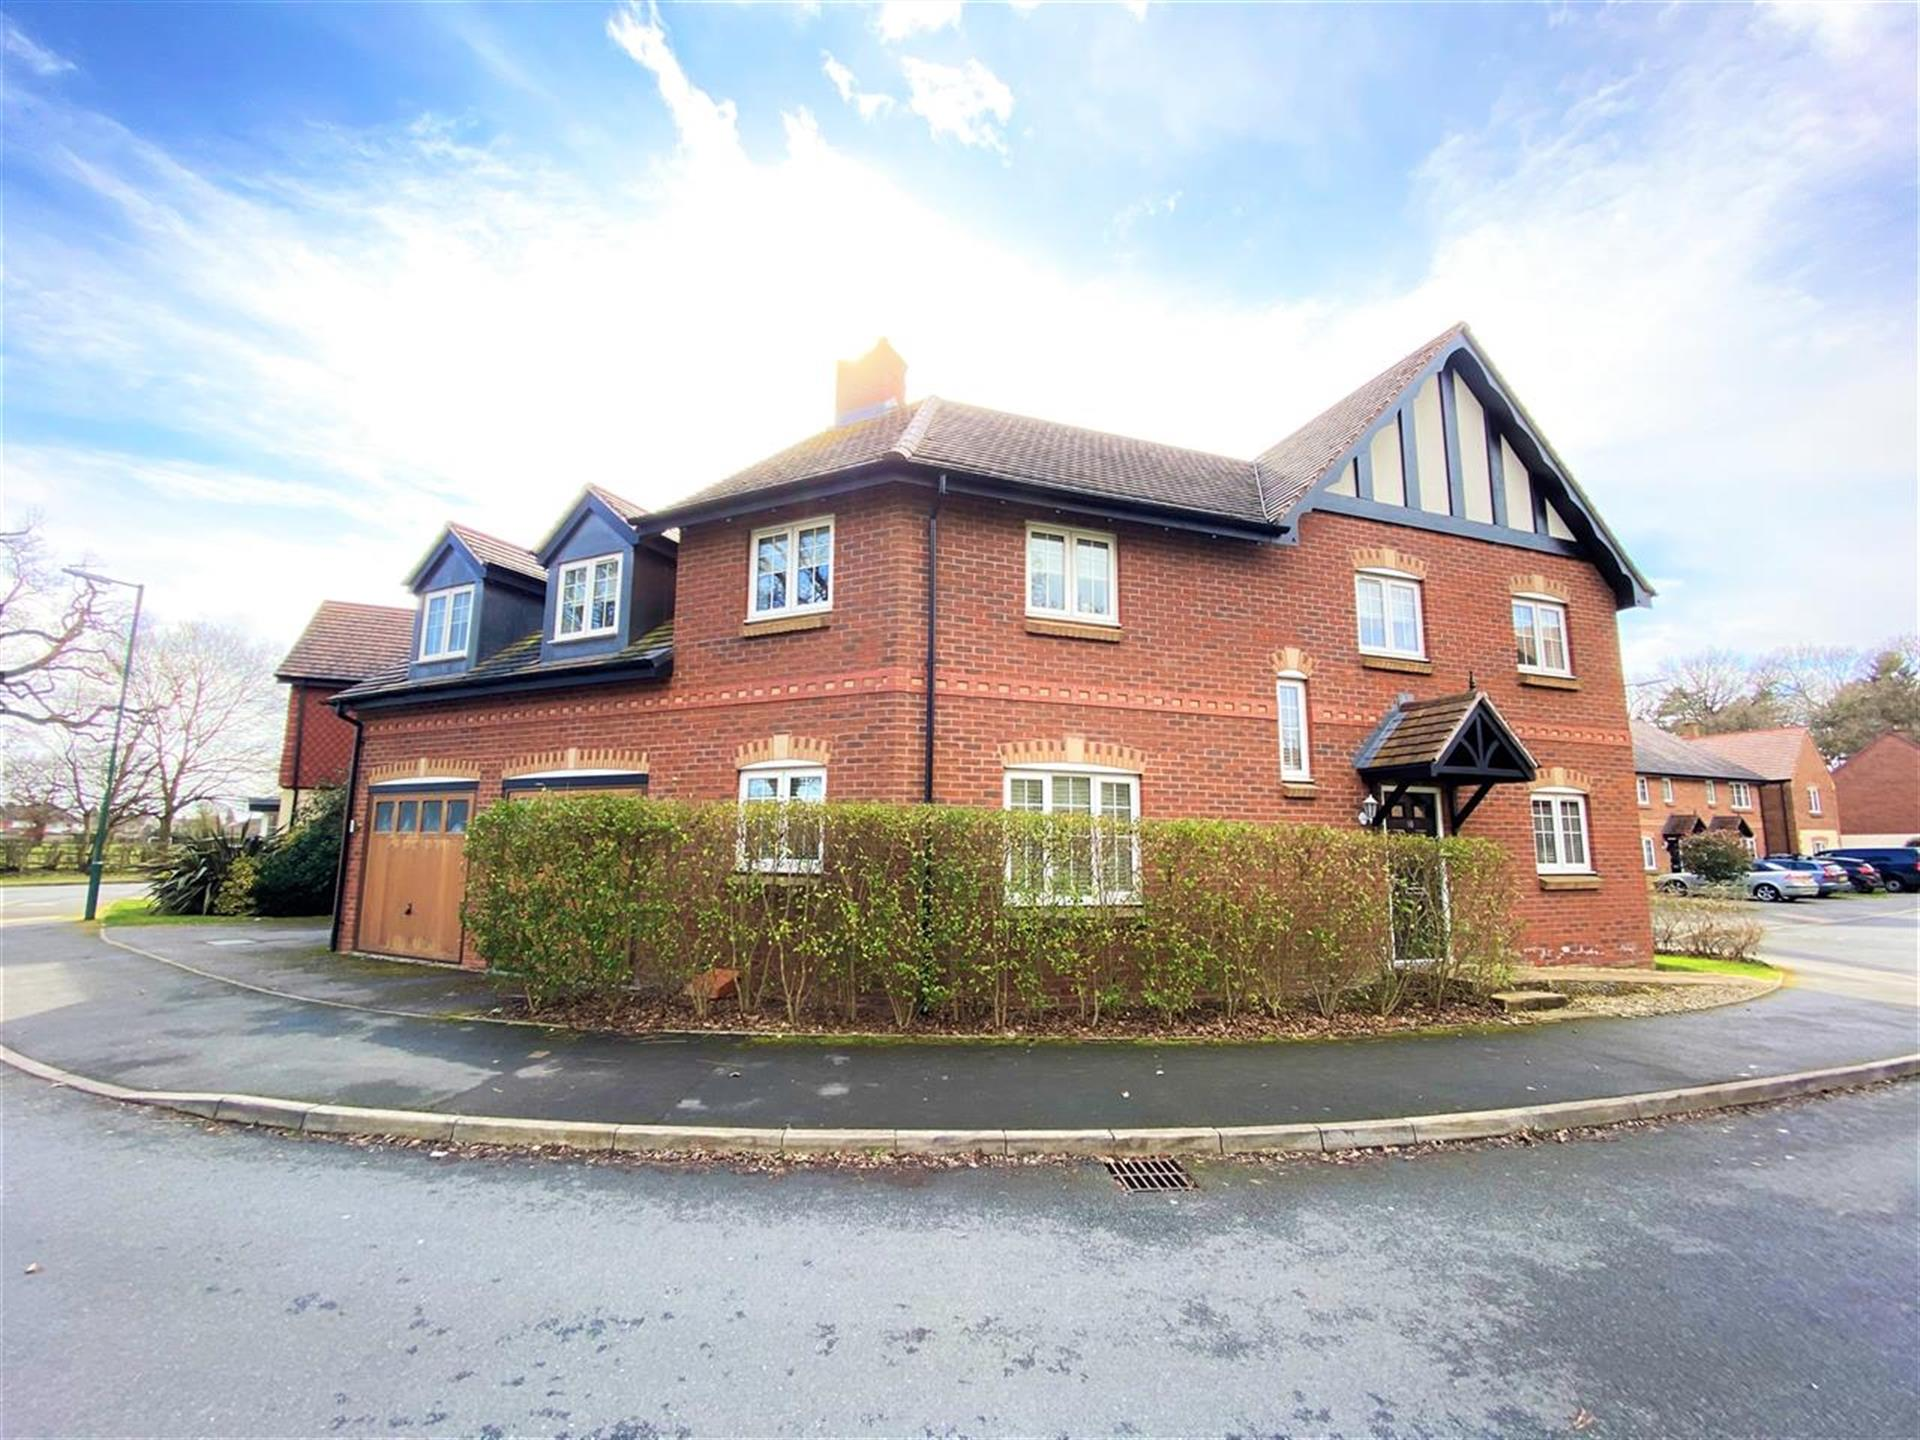 5 Bedroom Detached House For Sale - Main Picture